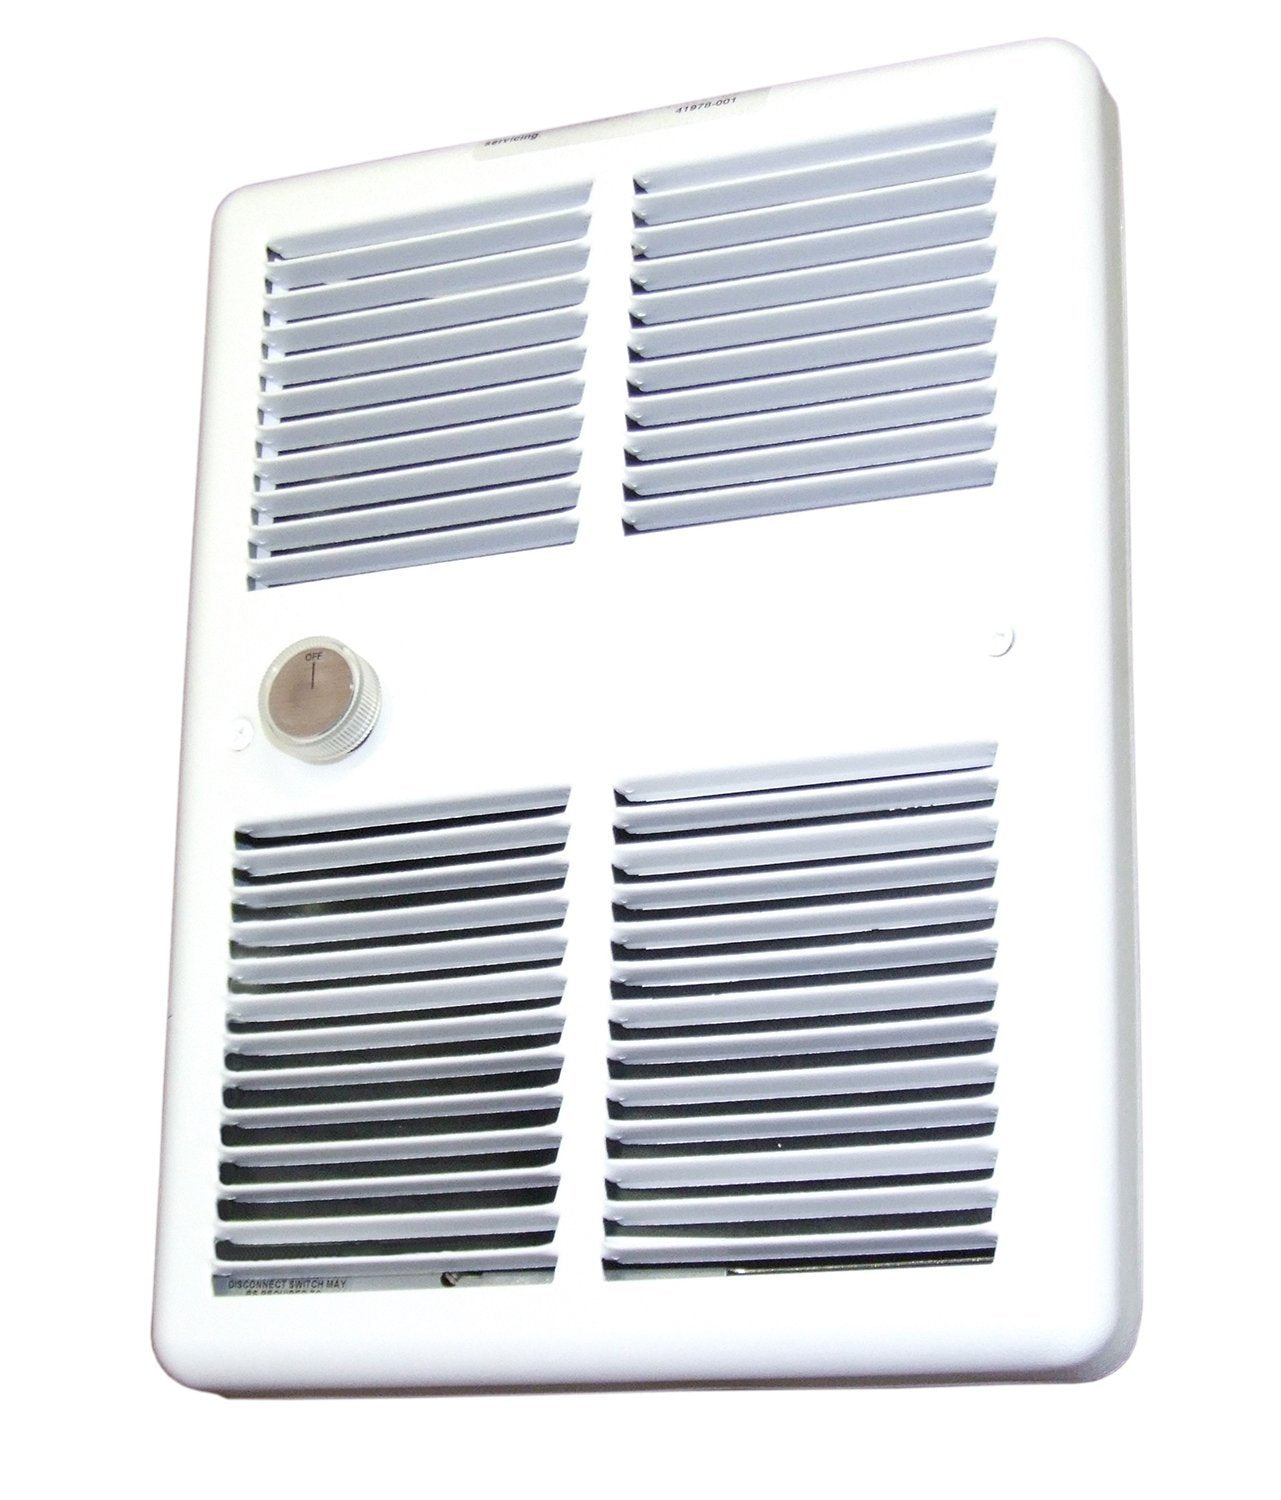 TPI 1000/750W 240/208V 3200 Series Midsized Fan Forced Wall Heater, No Thermostat - HF3210RPW